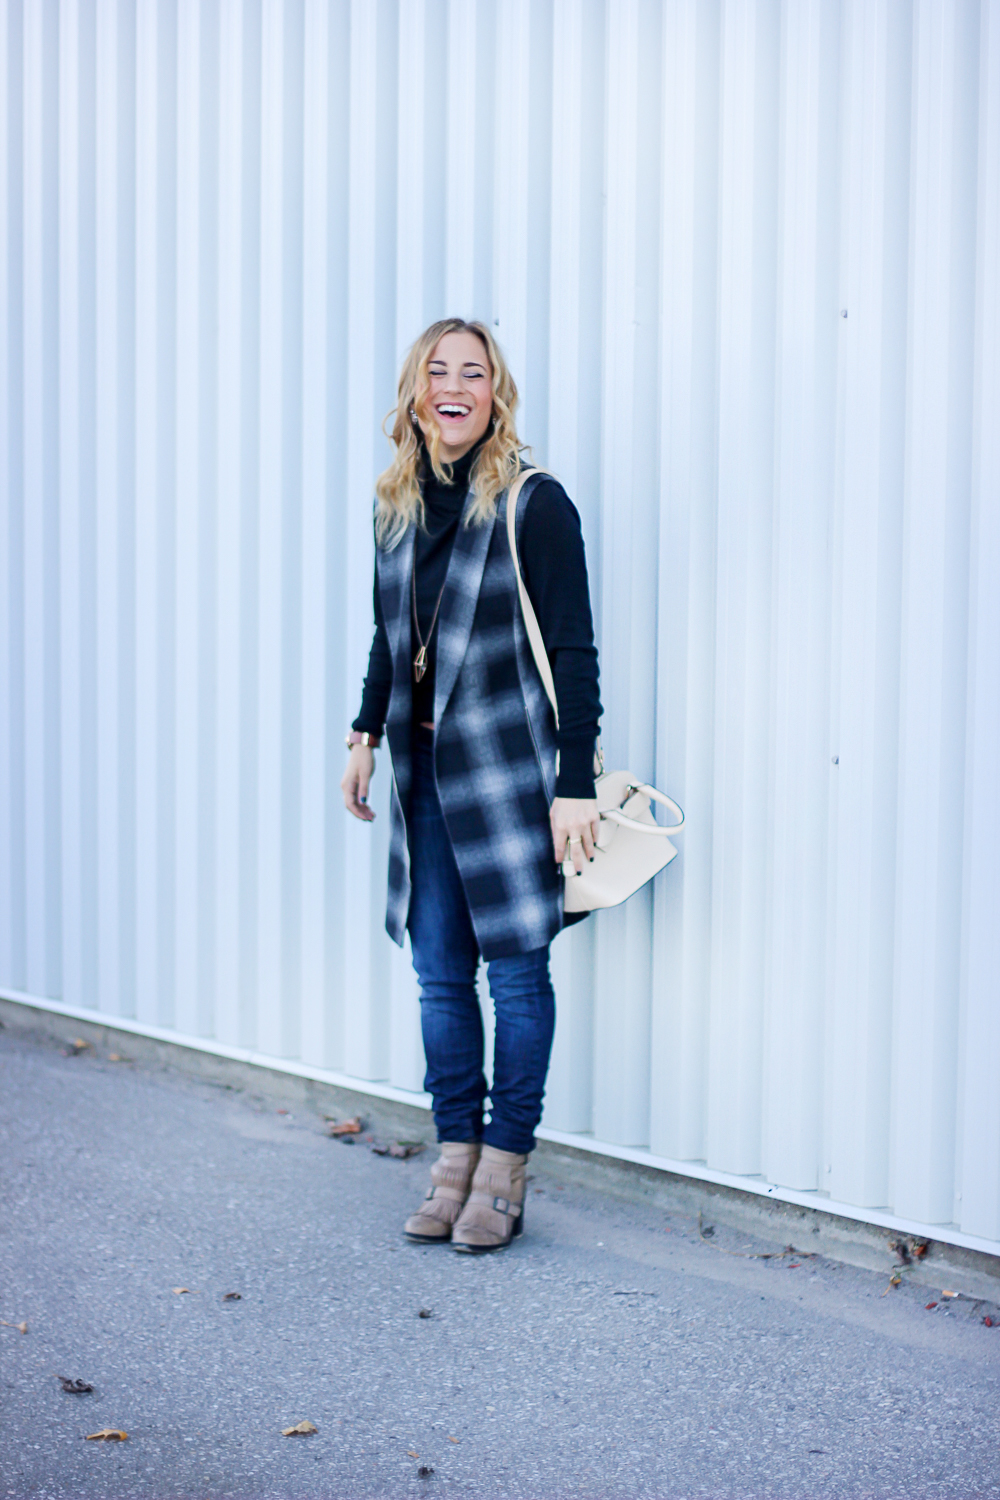 Toronto fashion and lifestyle blogger, Jackie Goldhar, from Something About That, styles a black turtleneck sweater, plaid vest and skinny dark jeans